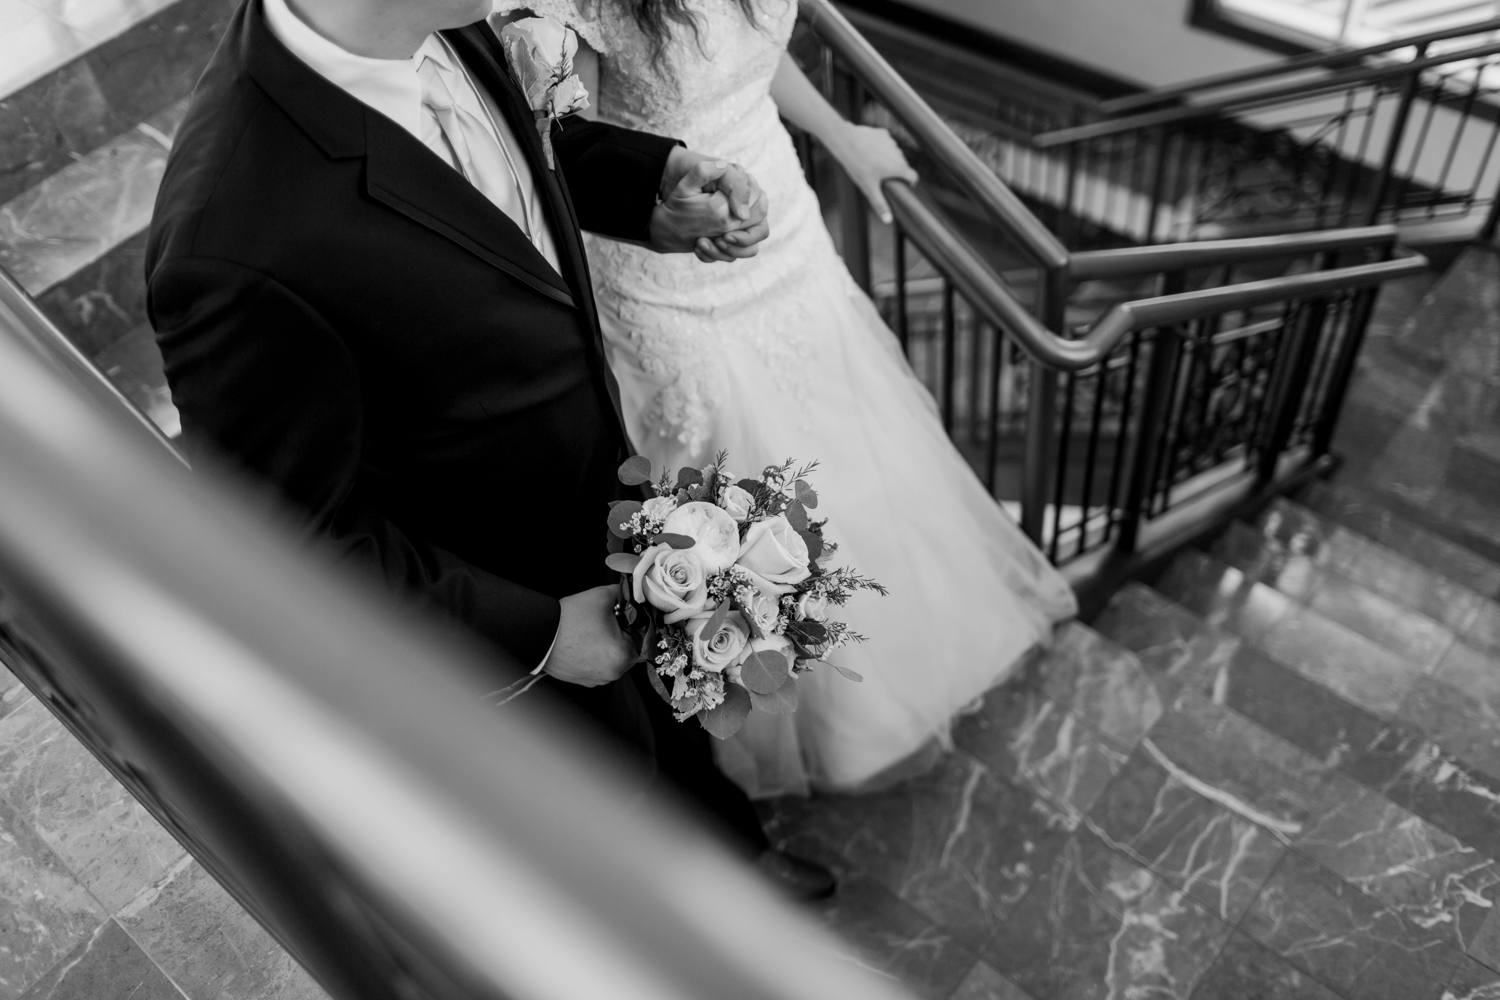 Community_Life_Center_Indianapolis_Indiana_Wedding_Photographer_Chloe_Luka_Photography_6886.jpg